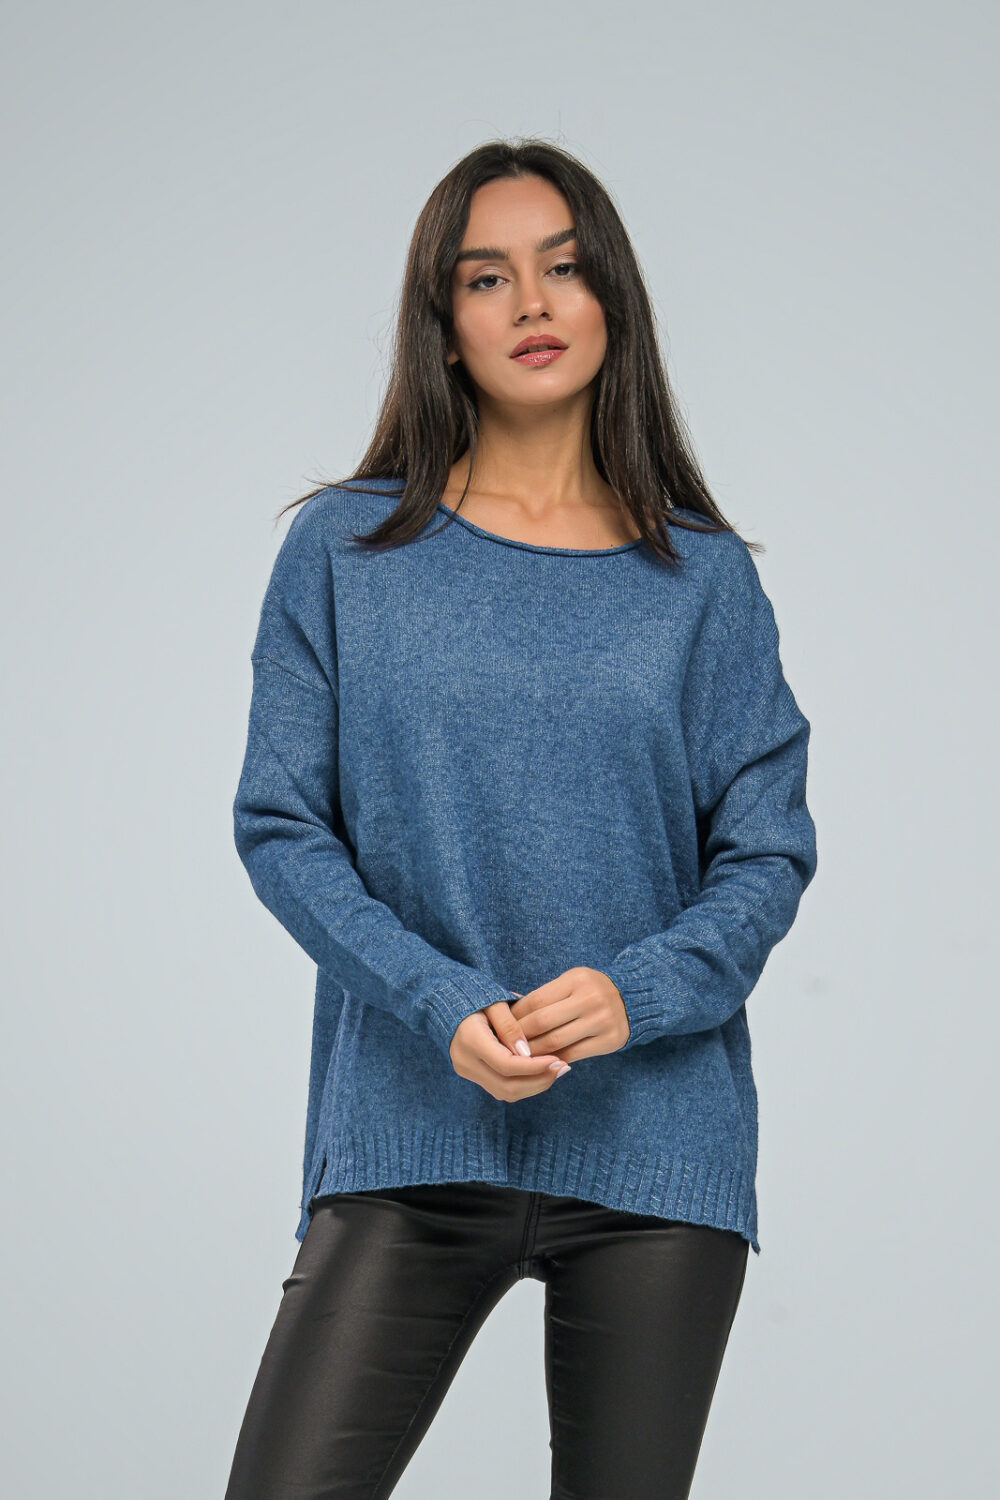 Basic Light Blue Knit Sweater